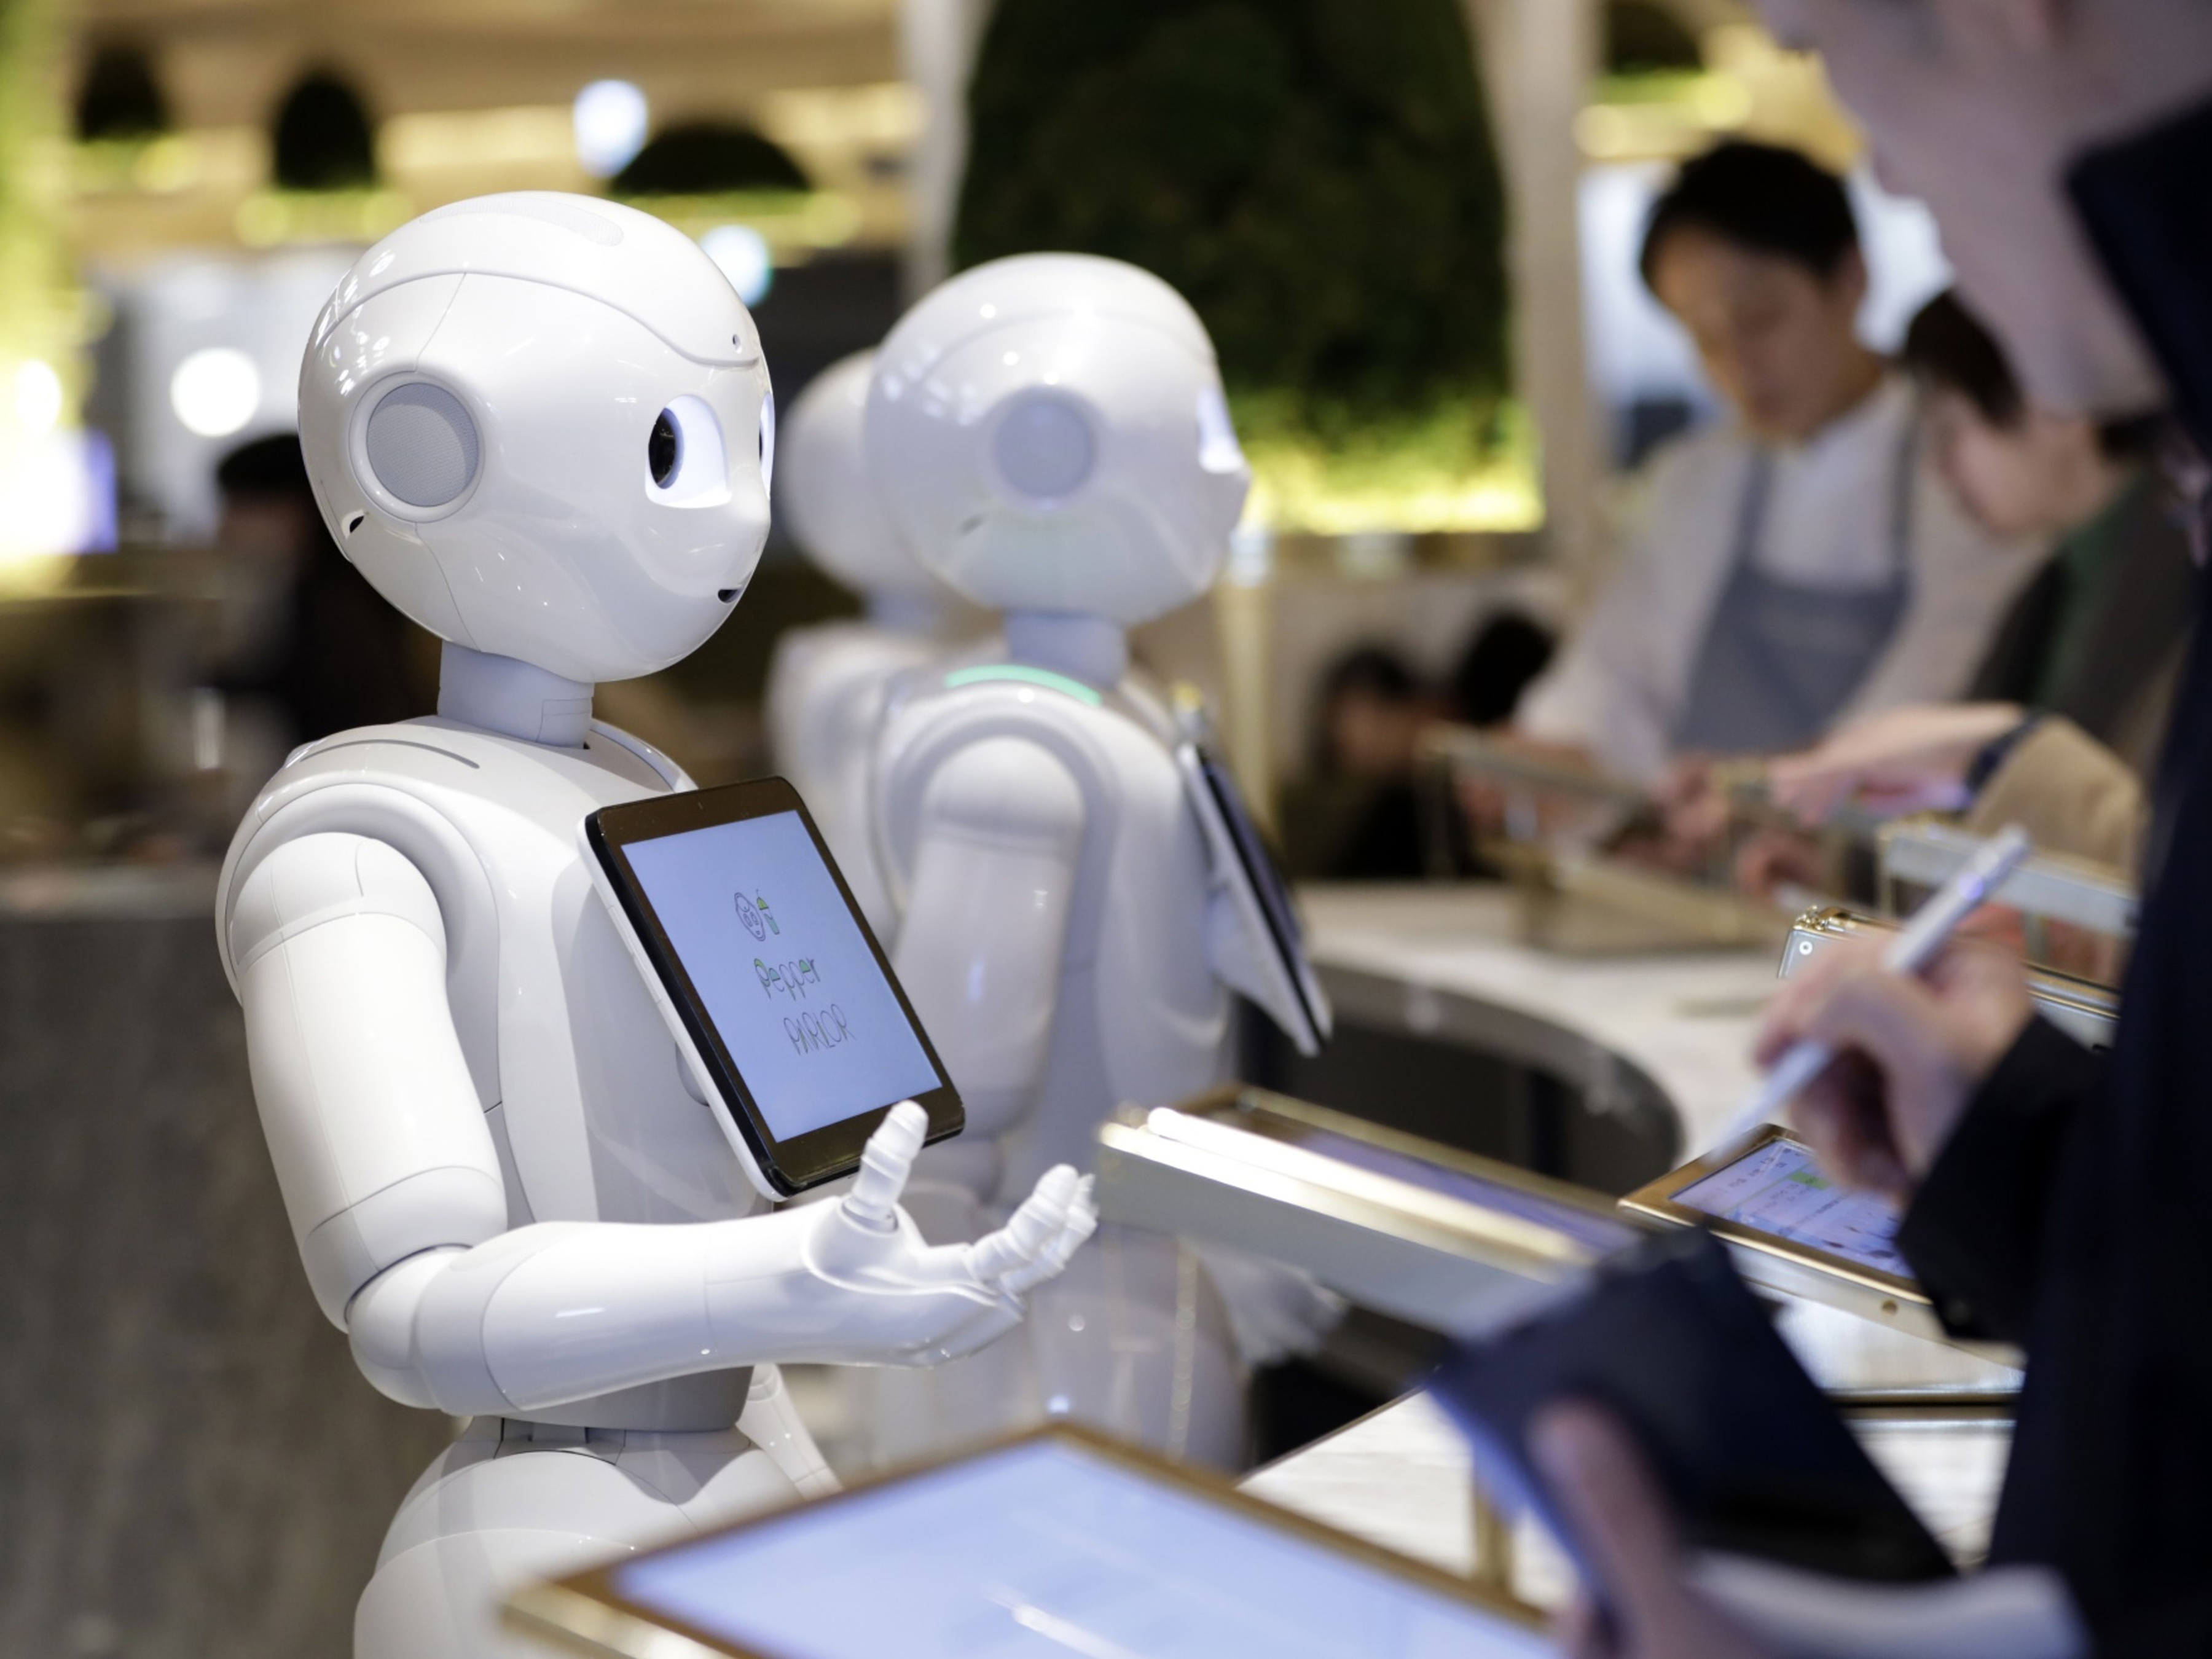 Automation Allows Companies to Shed Human Workers. Can It Also Save Them?